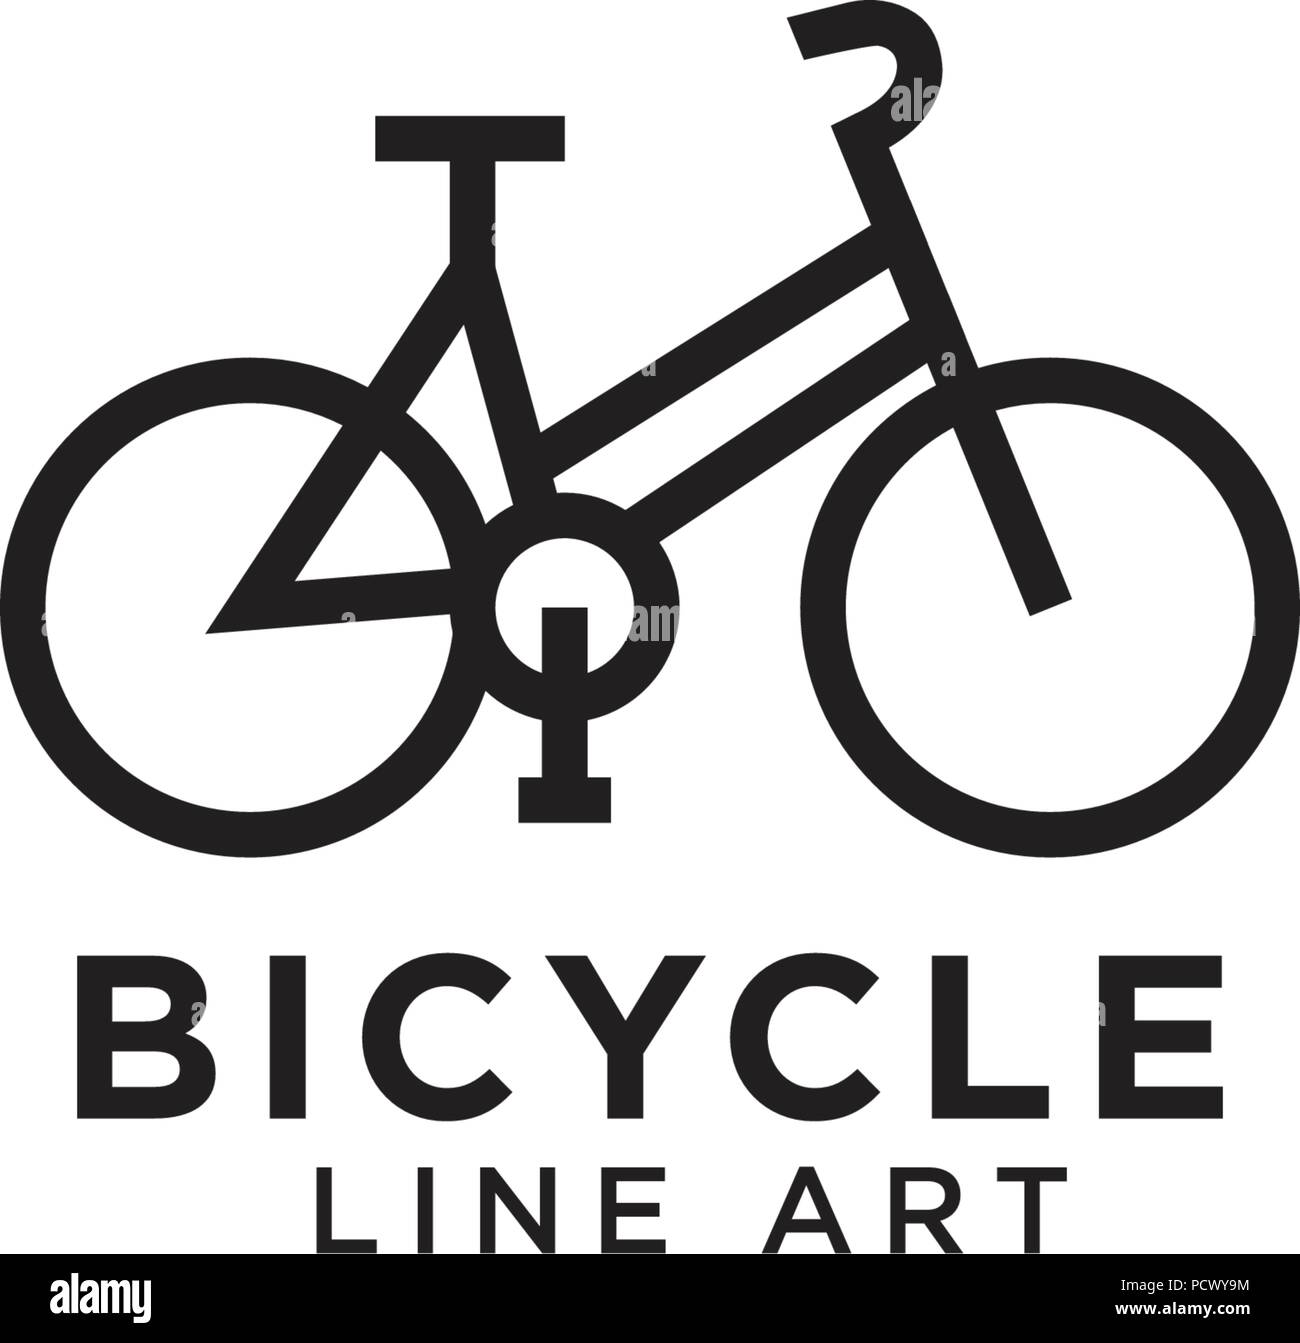 Line art of bicycle logo design template vector image.